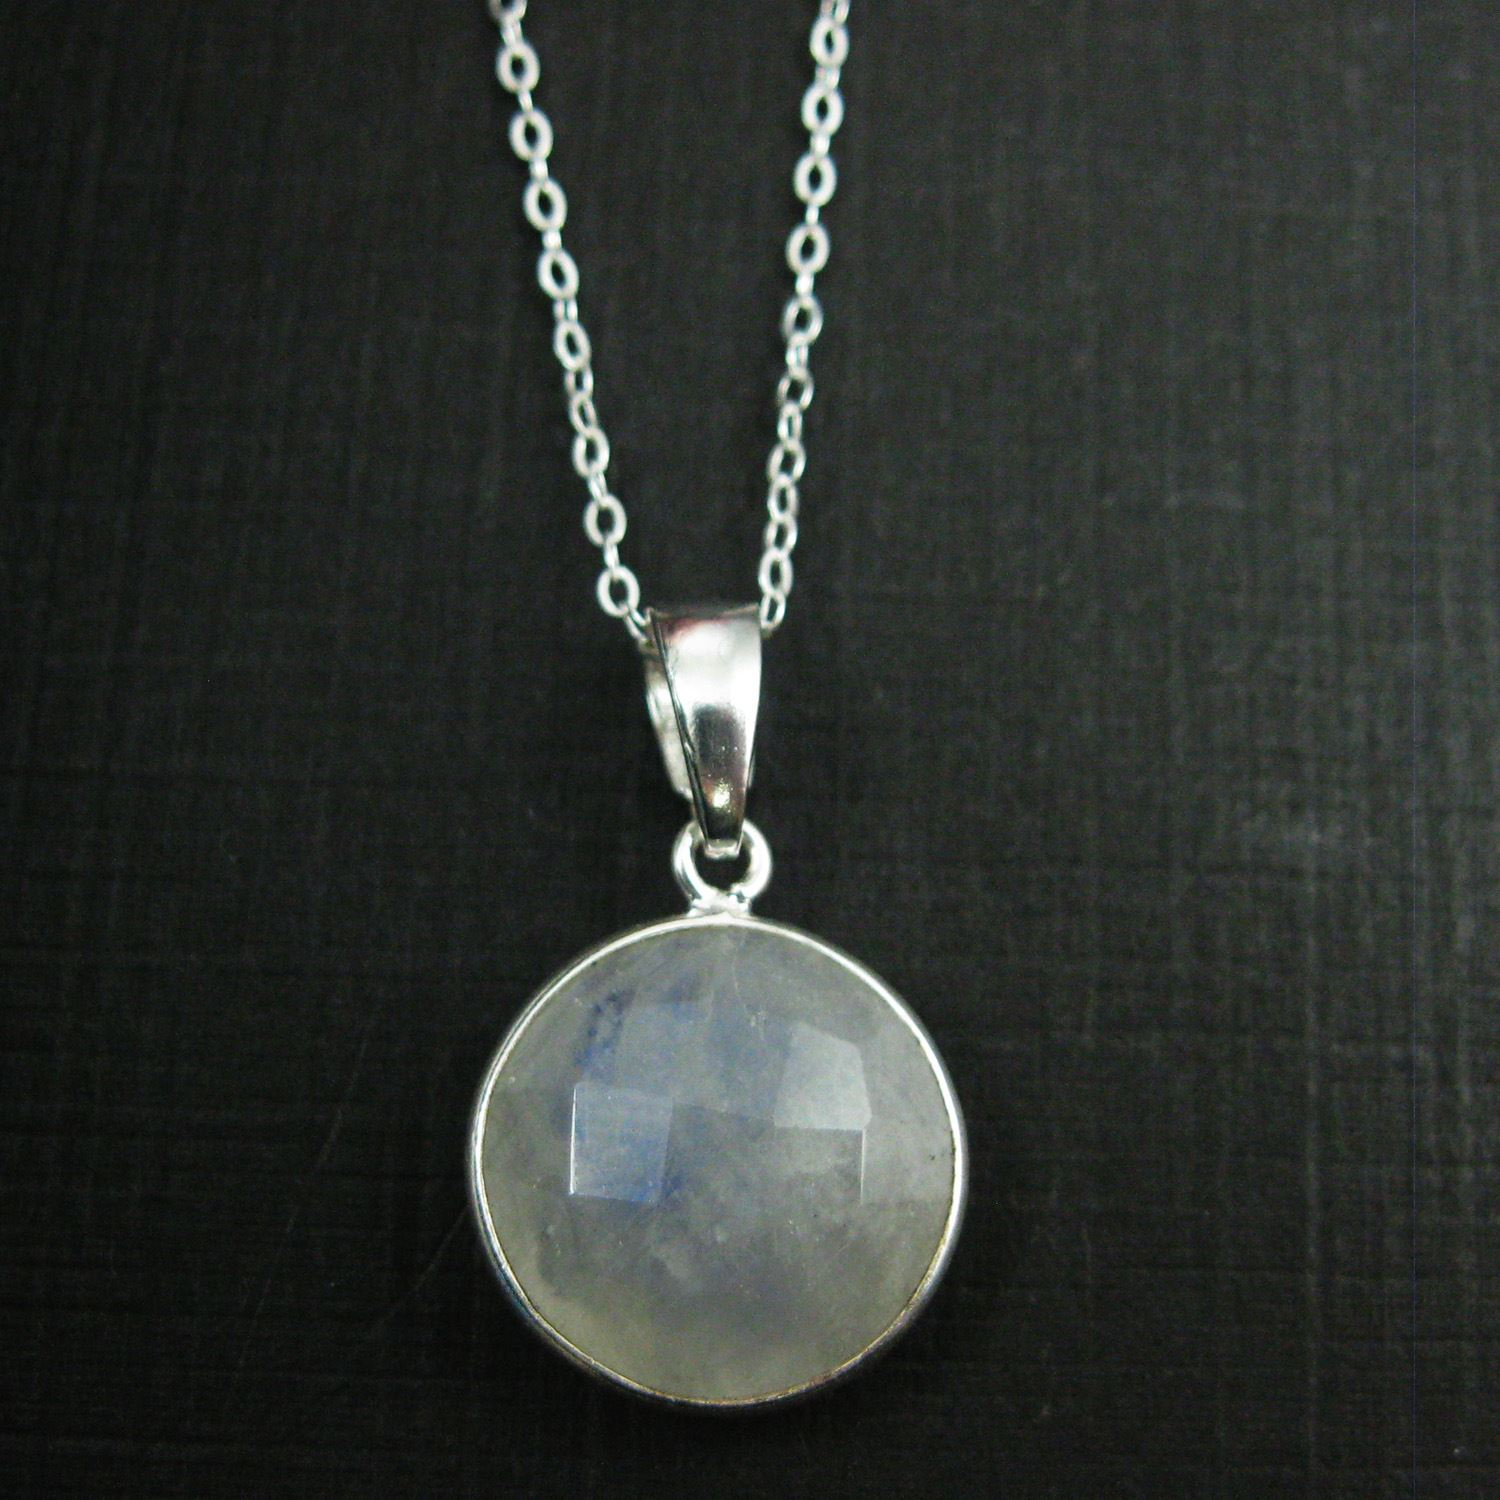 Bezel Gemstone Pendant with Bail - Sterling Silver Round Gem Pendant - Ready for Necklace - 24mm- Moonstone